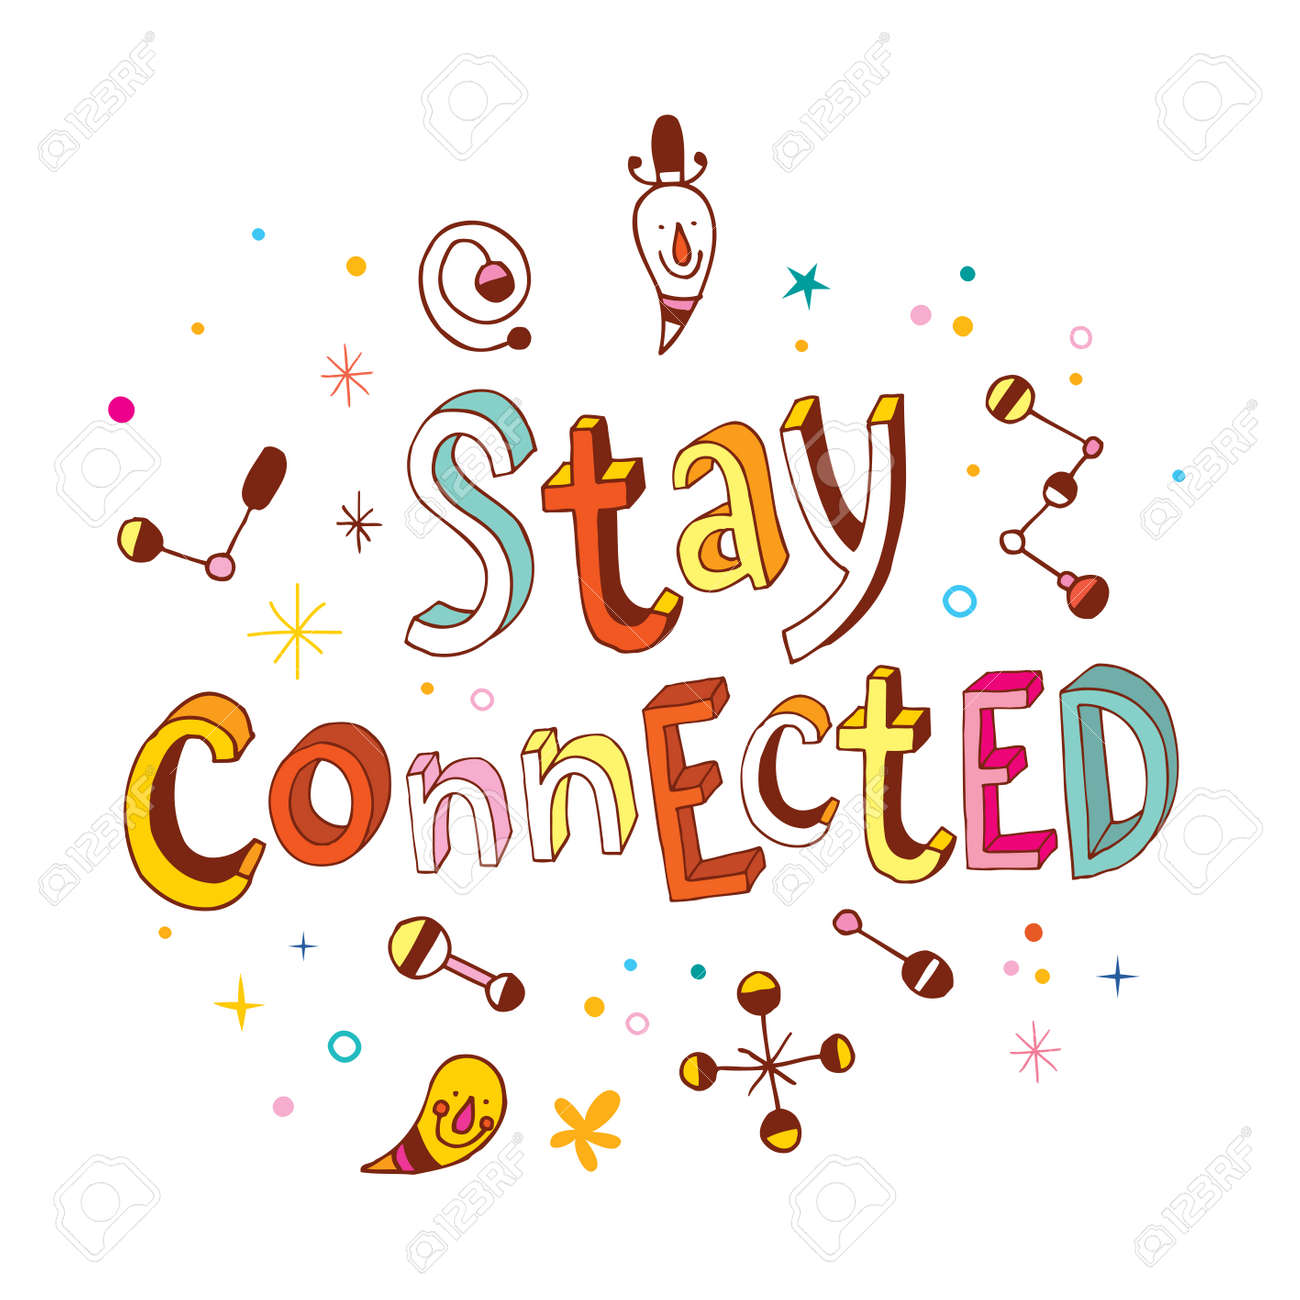 Stay Connected Royalty Free Cliparts, Vectors, And Stock ...